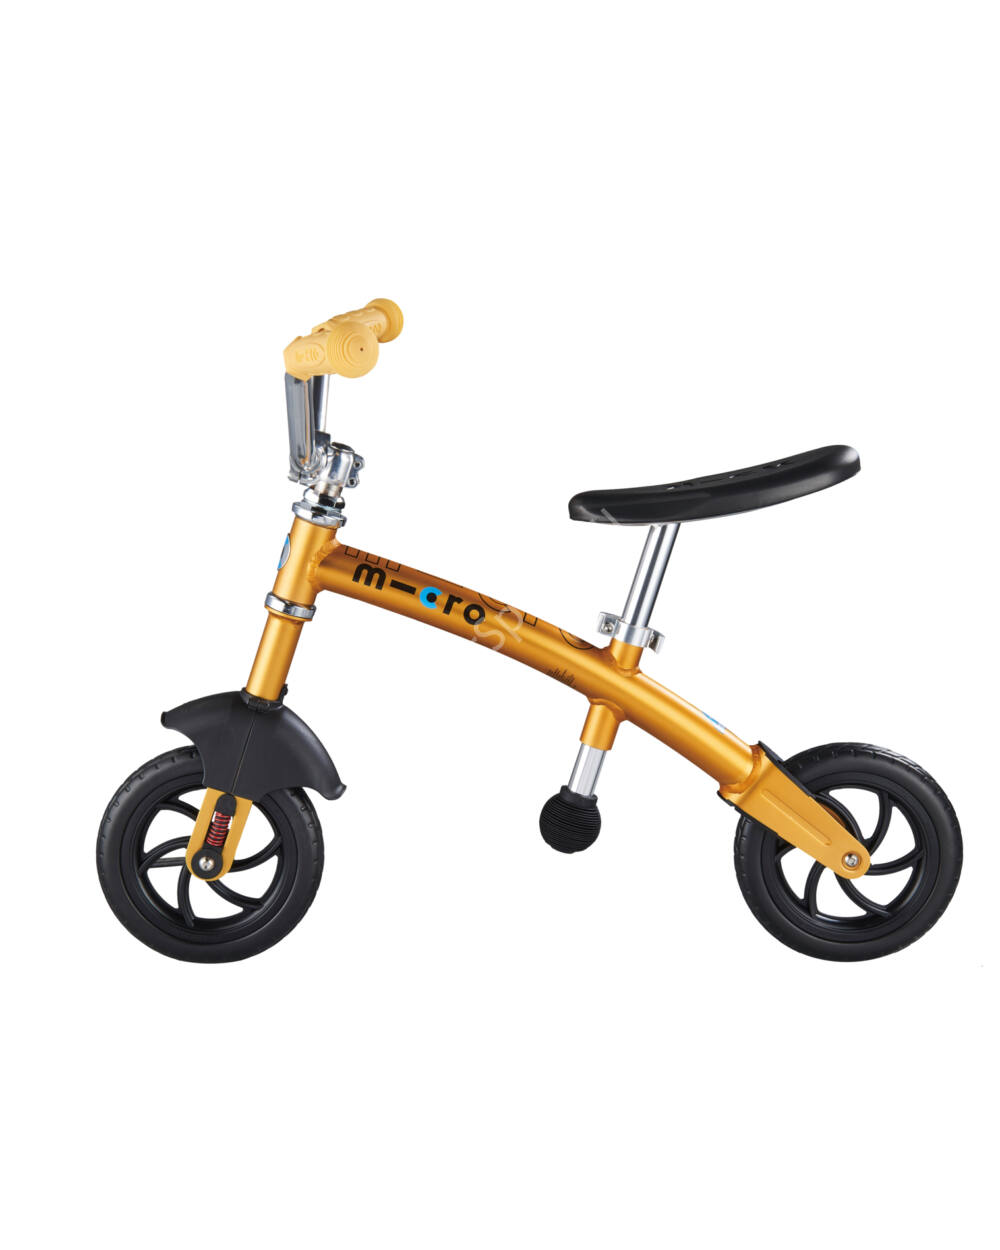 Micro 2in1 G-Bike Chopper Deluxe futóbicikli, sárga